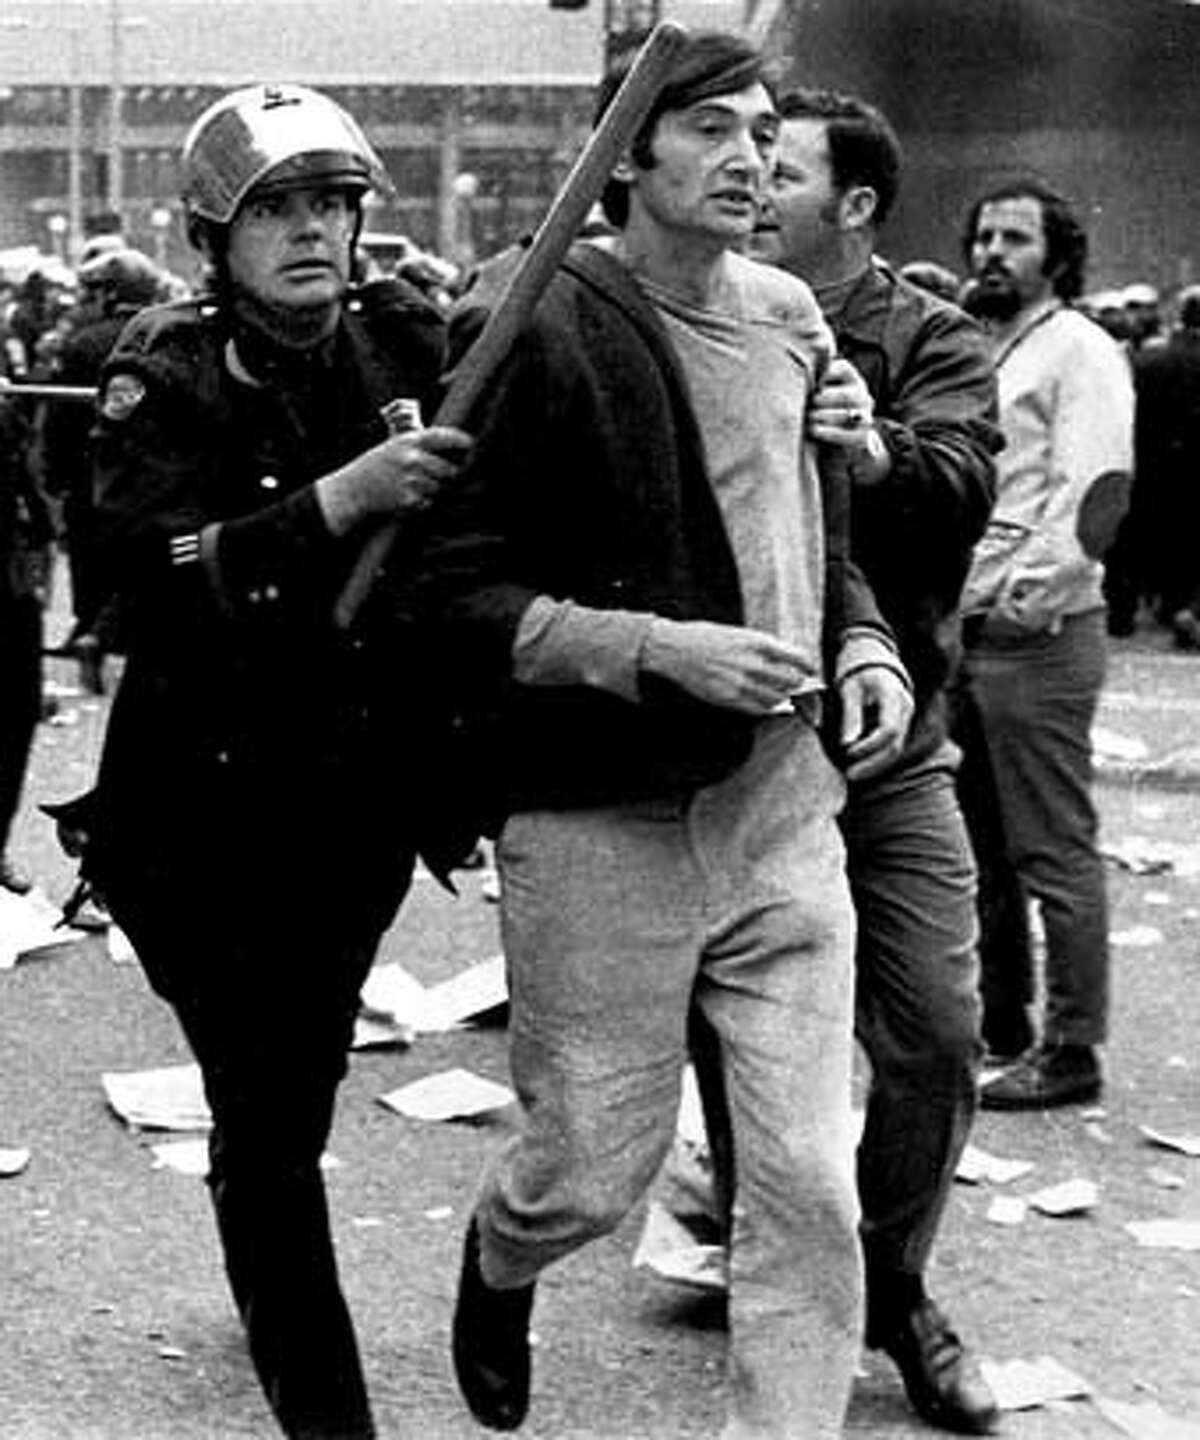 Zinn1: Howard Zinn is arrested at an anti-Vietnam war rally, during the height of the war. (Not sure what year this picture was taken) Datebook#Datebook#Chronicle#10/13/2004#ALL#Advance##0422407536